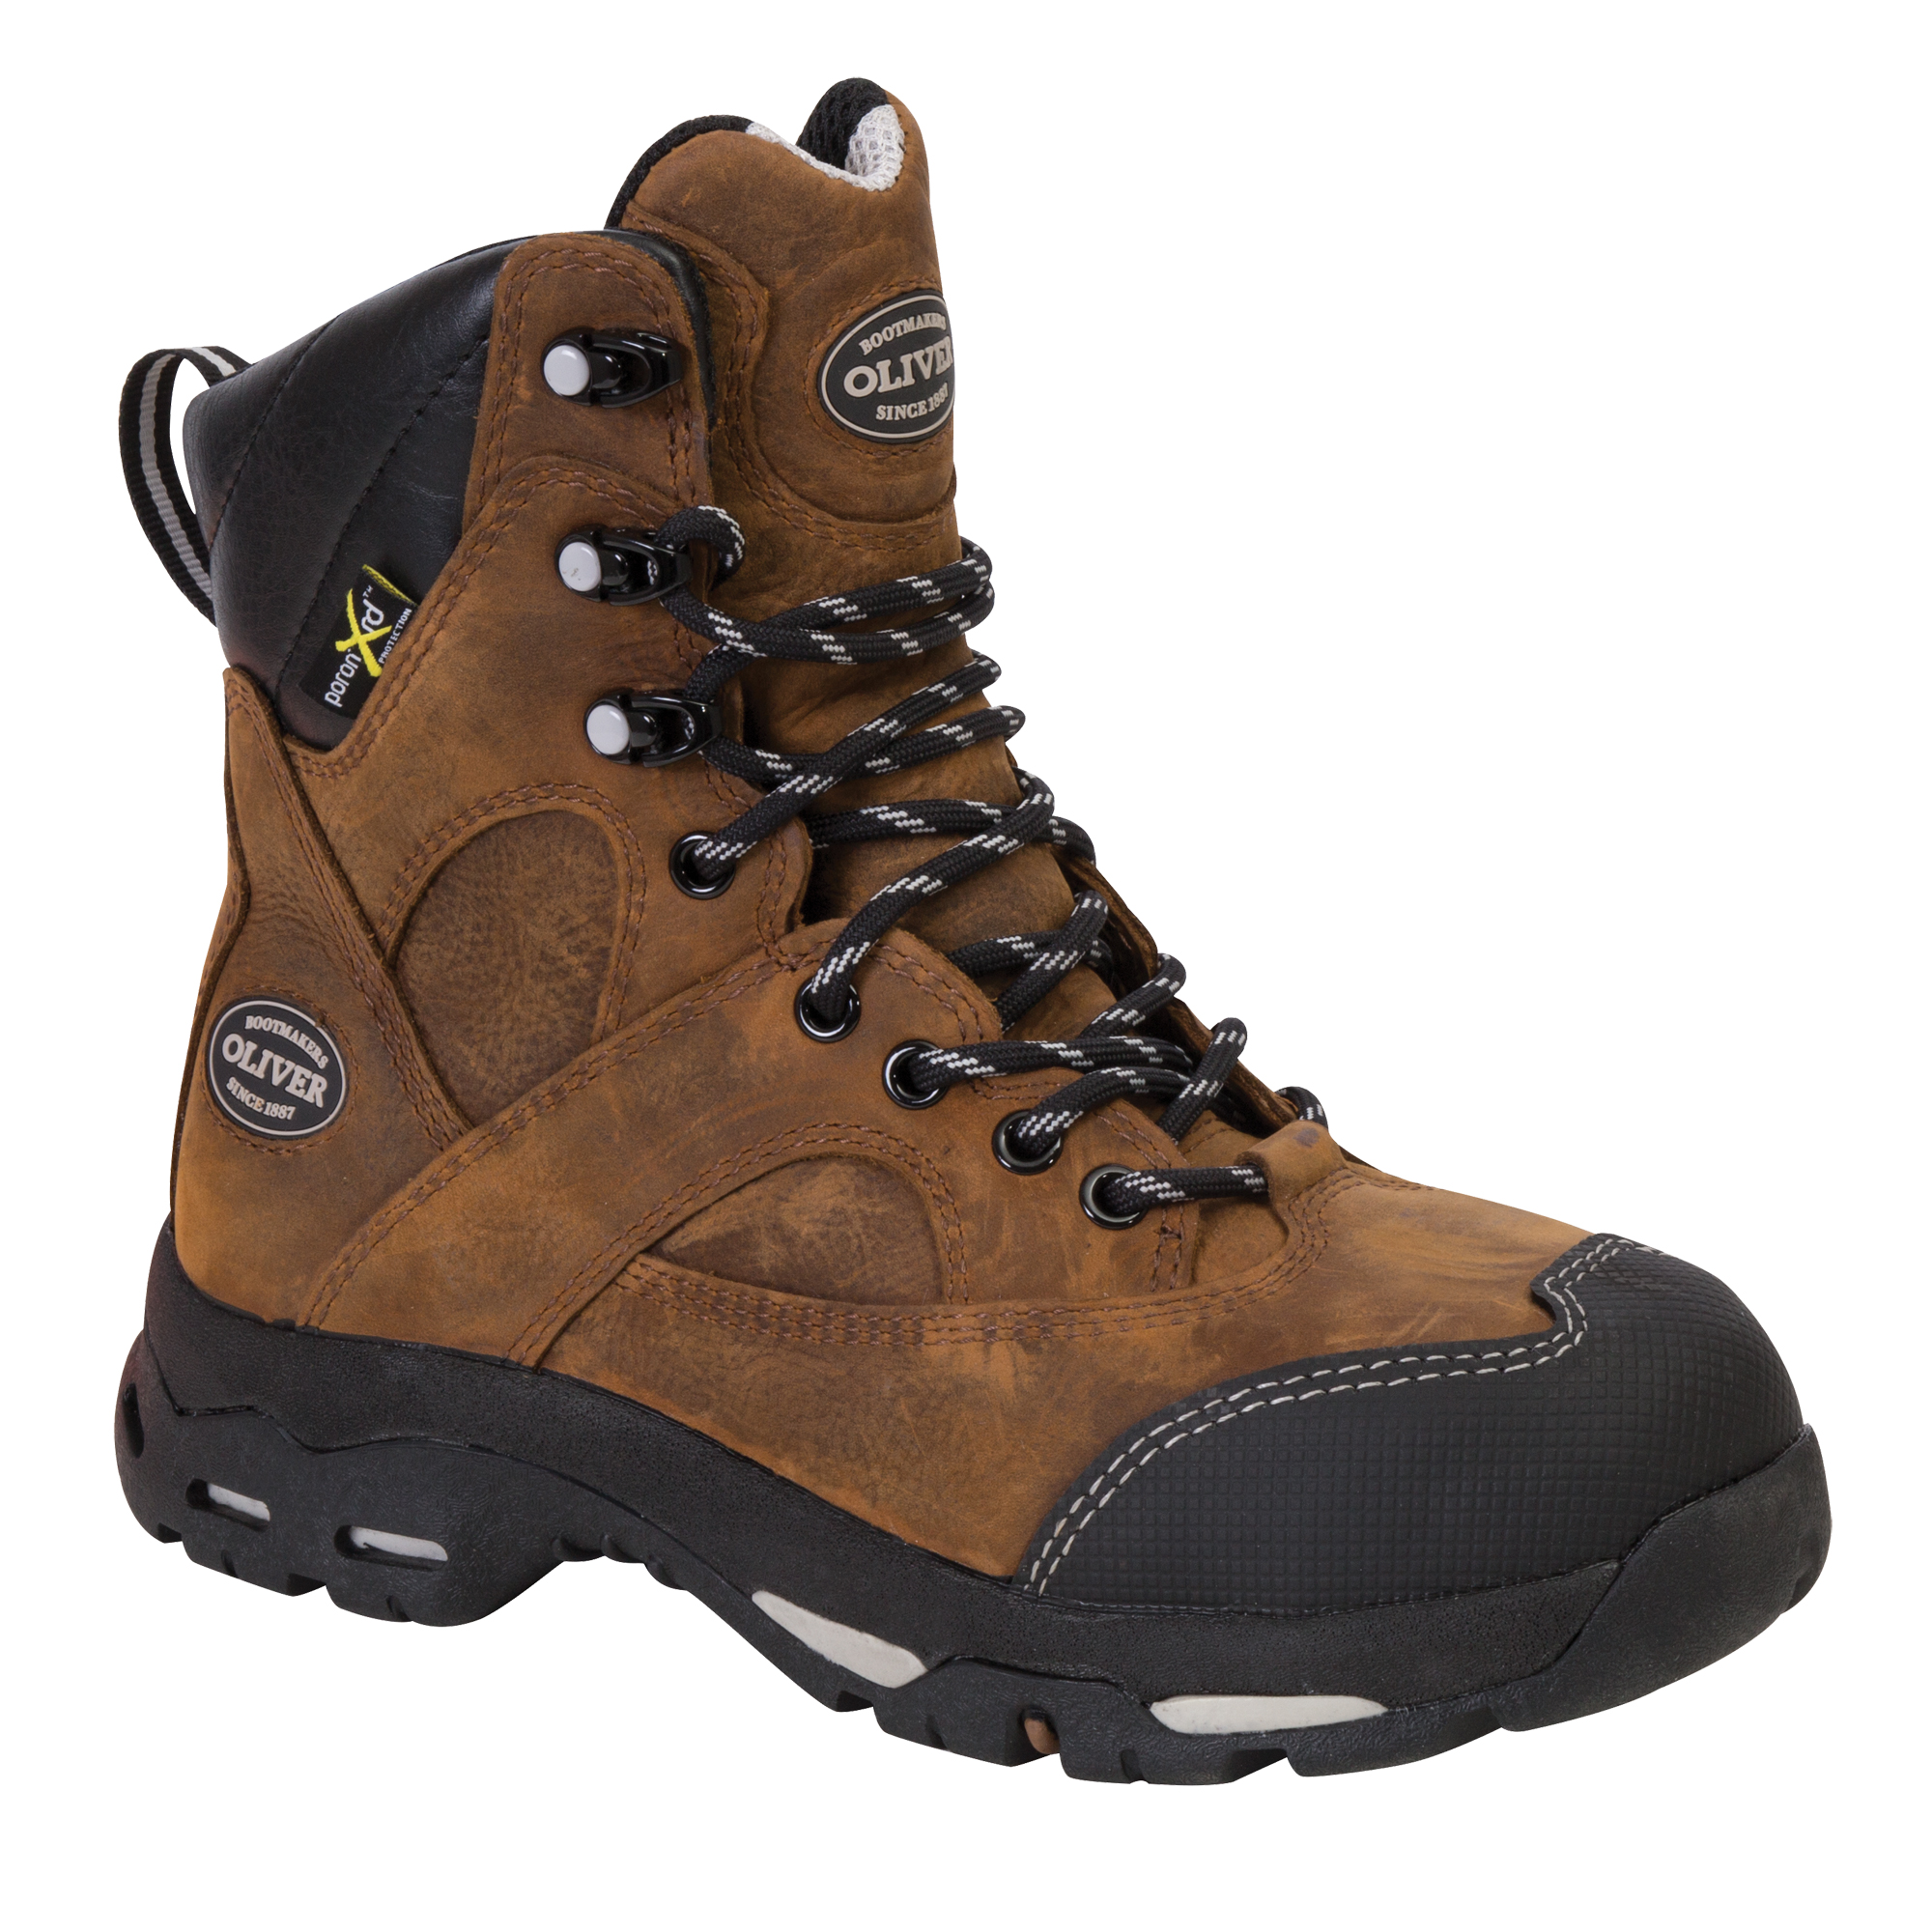 General Purpose Work Boots SGD850